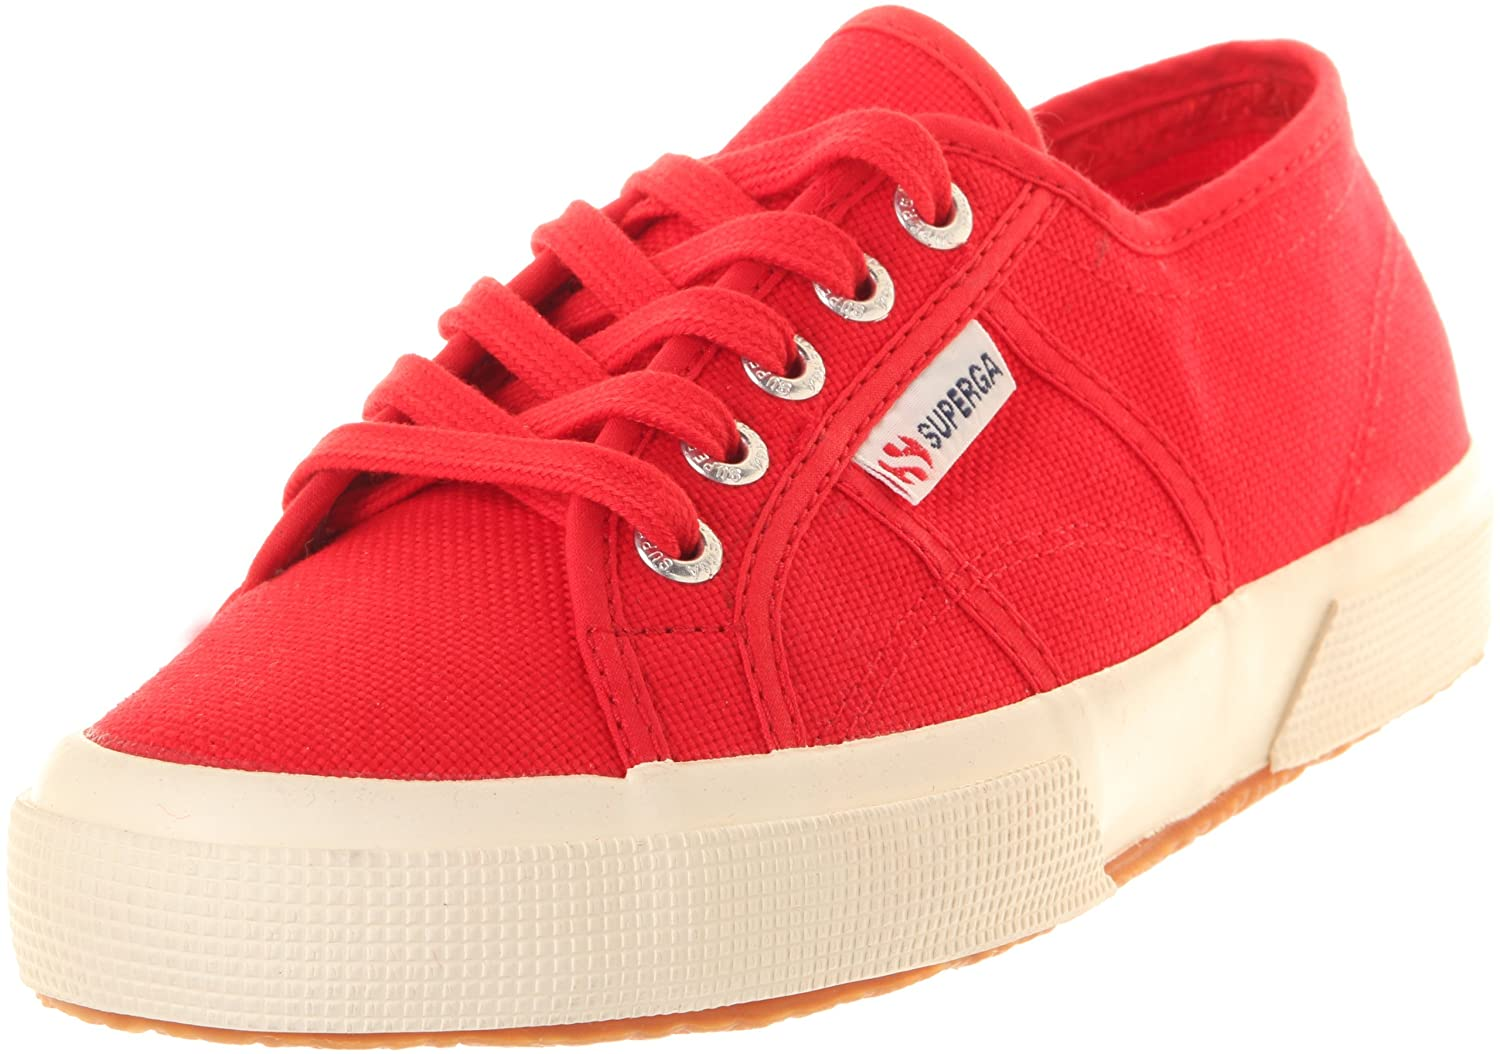 Superga Unisex 2750 Cotu Classic Sneaker B005VGE5FE 41.5 EU/10 M US Women/8.5 M US Men|Red